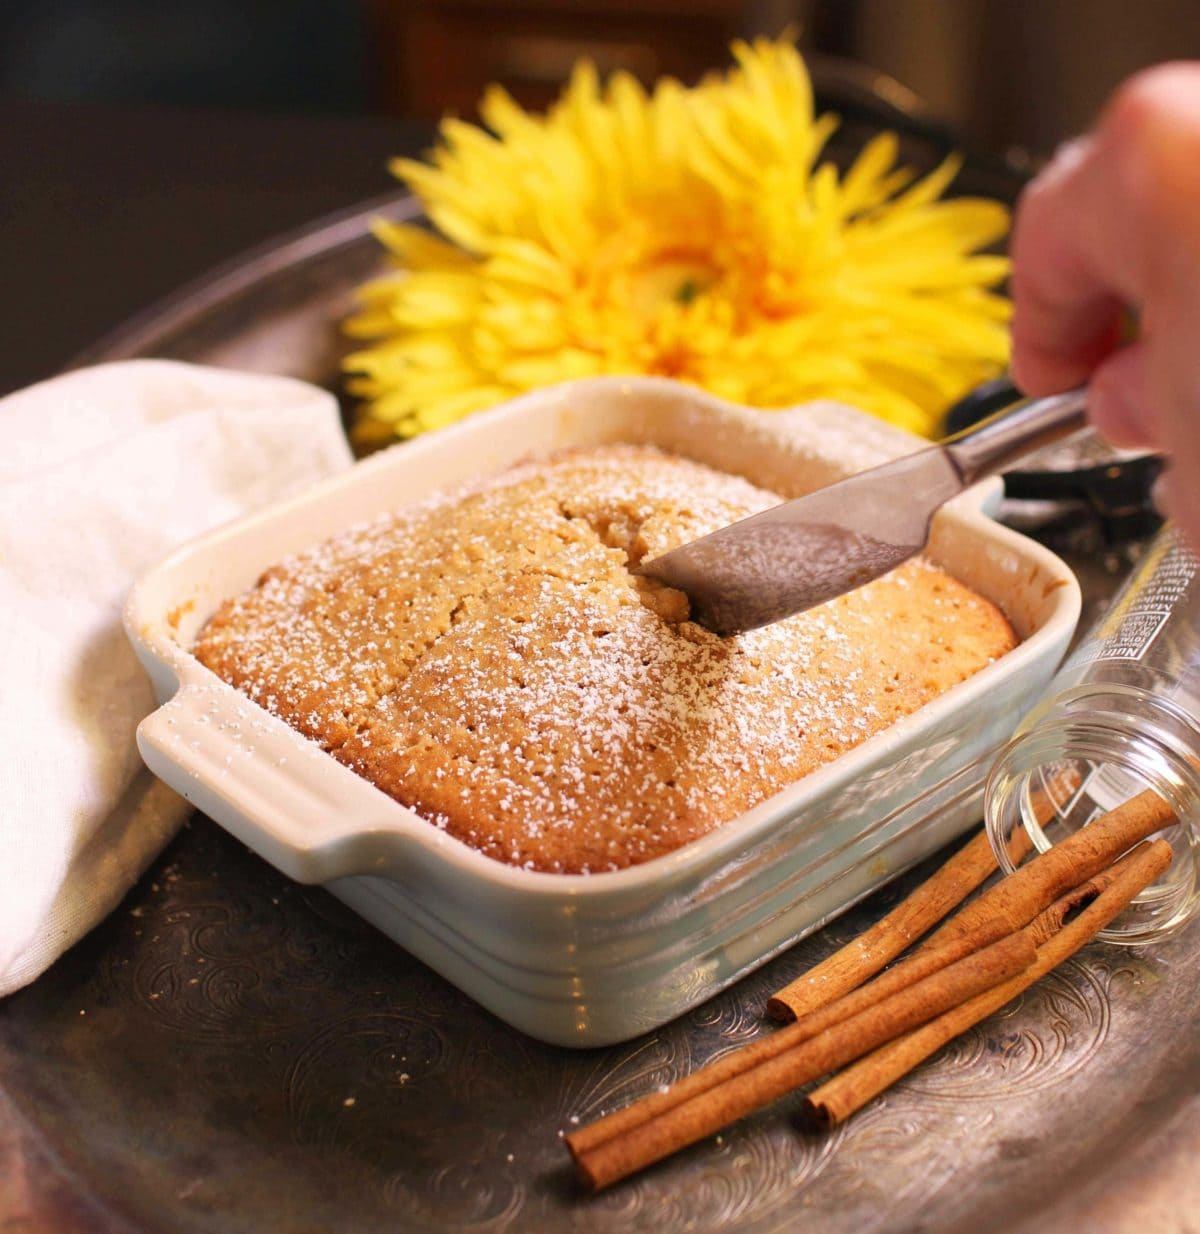 A knife cutting a piece of spice cake dusted with powdered sugar from a small baking dish on a metal tray with yellow flowers and cinnamon sticks